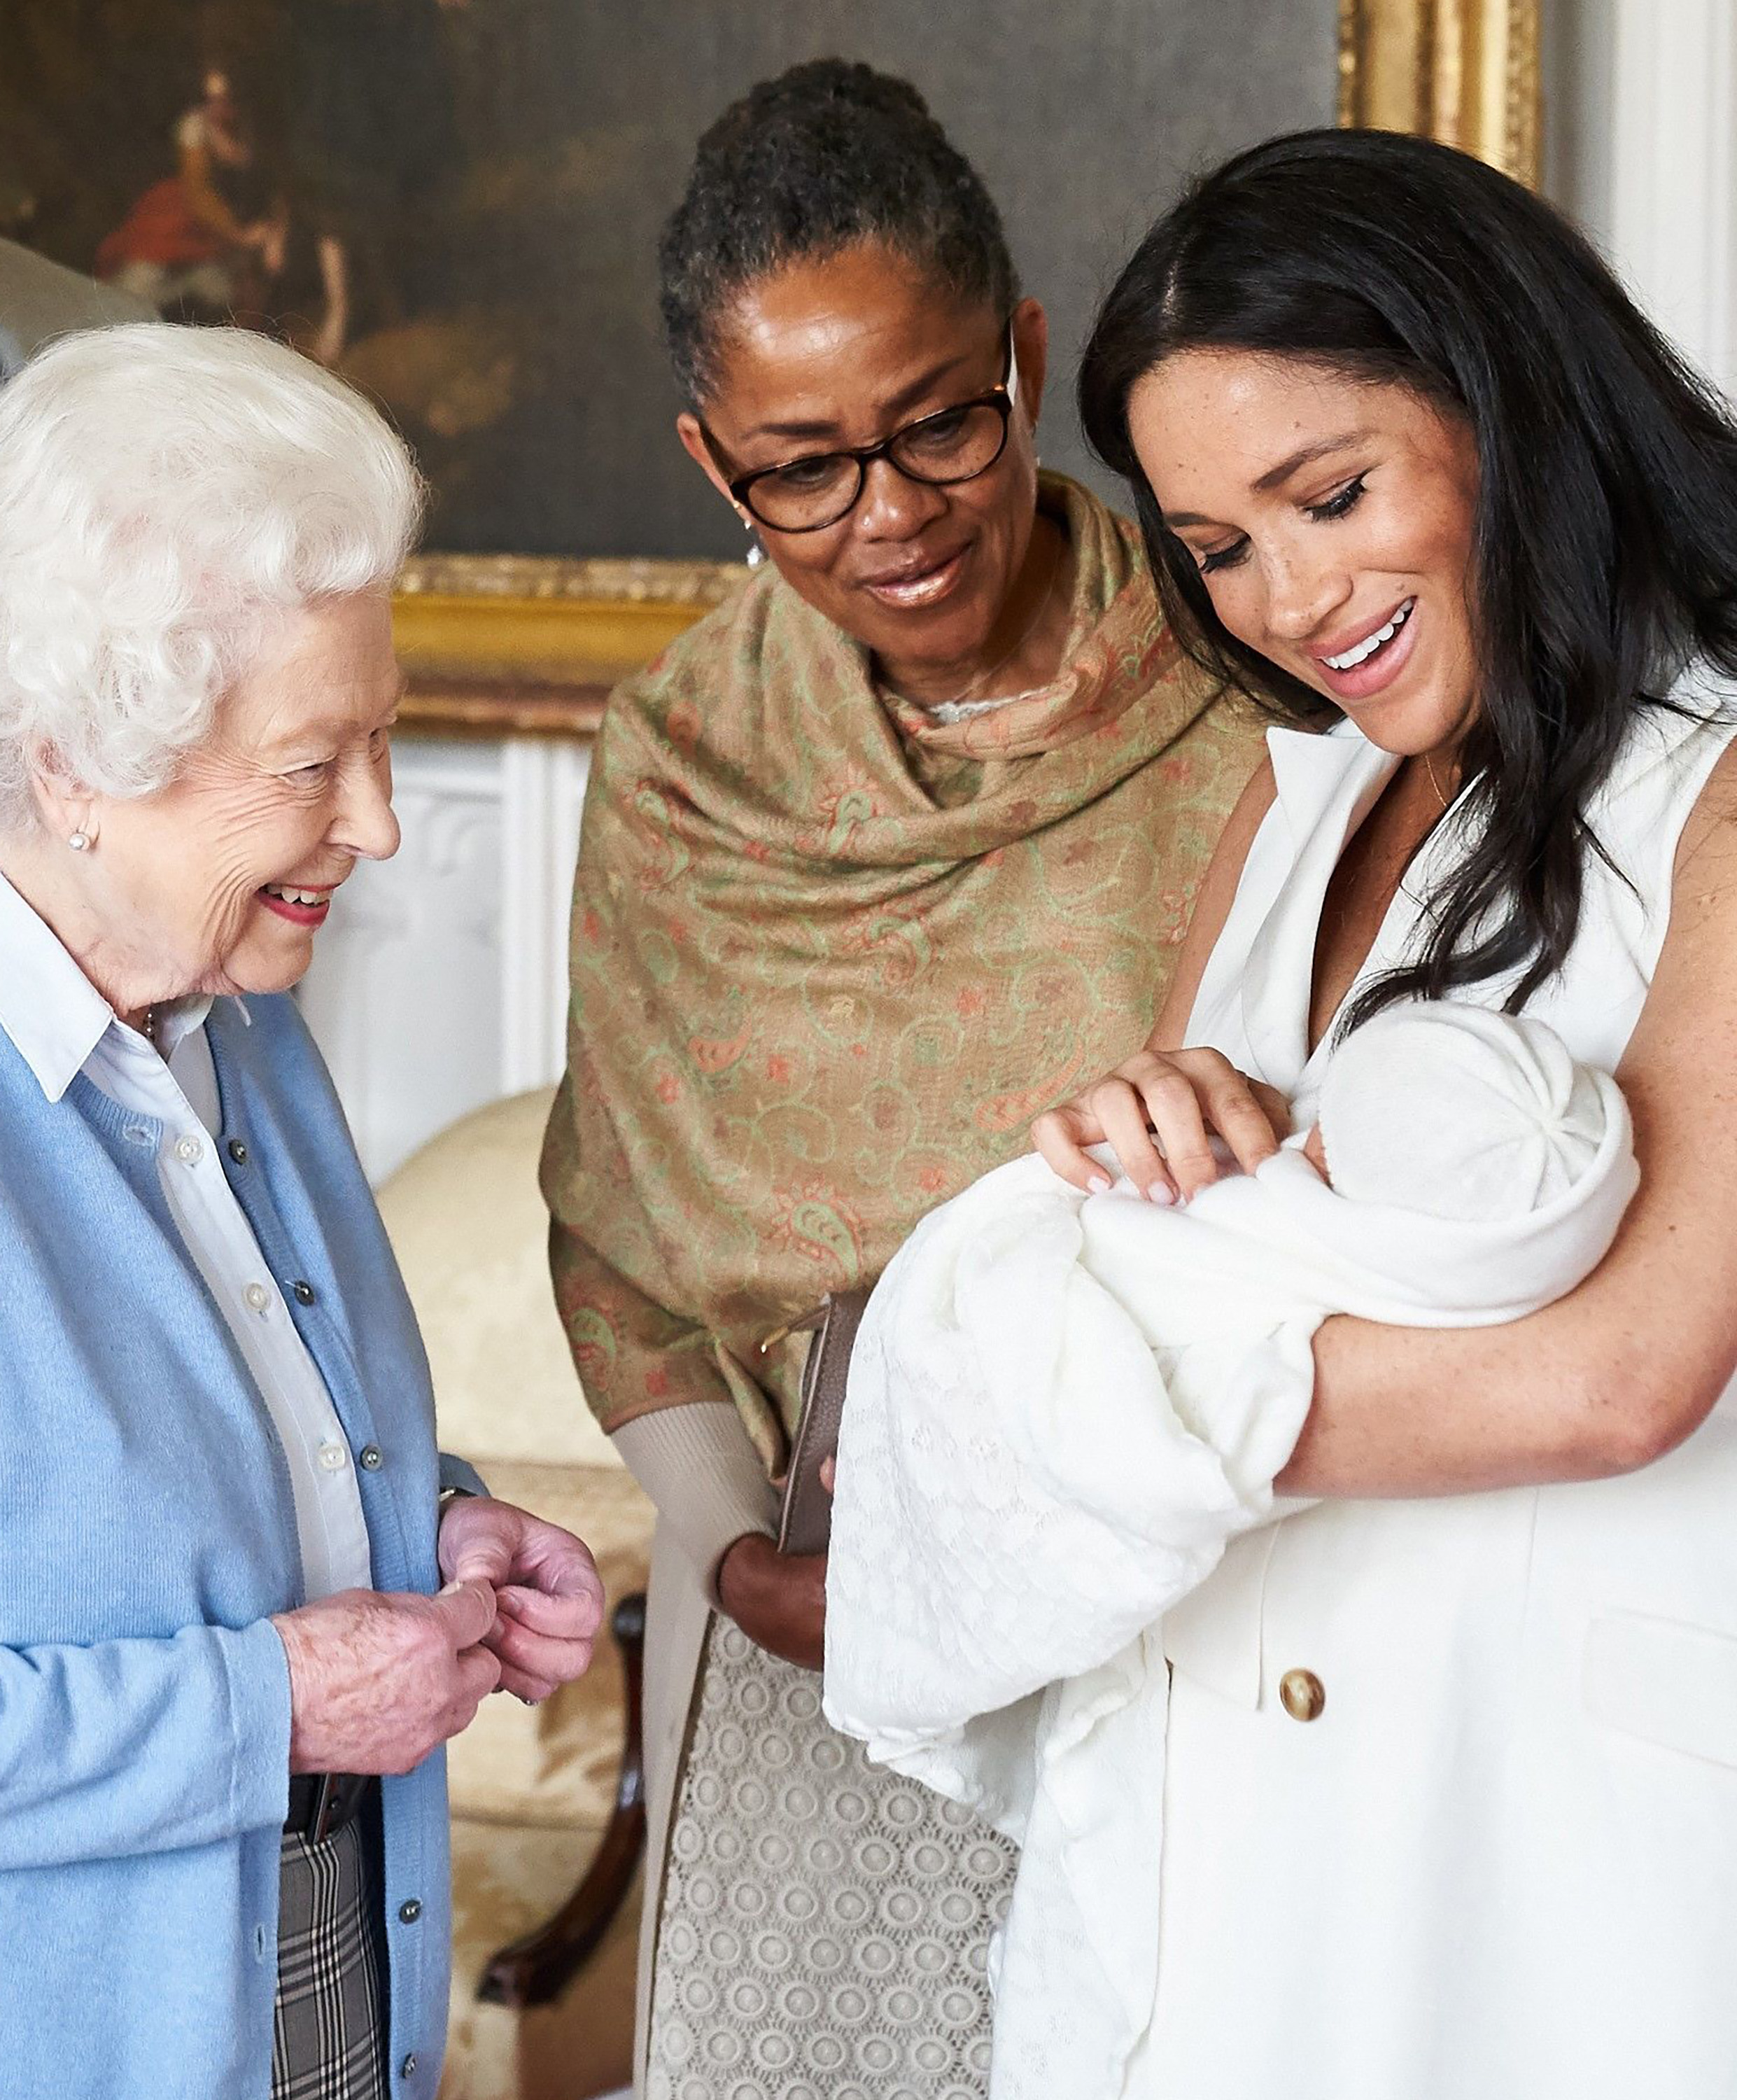 meghan markle s mom doria ragland is thrilled baby archie is in l a https www closerweekly com posts meghan markles mom doria ragland is thrilled baby archie is in l a